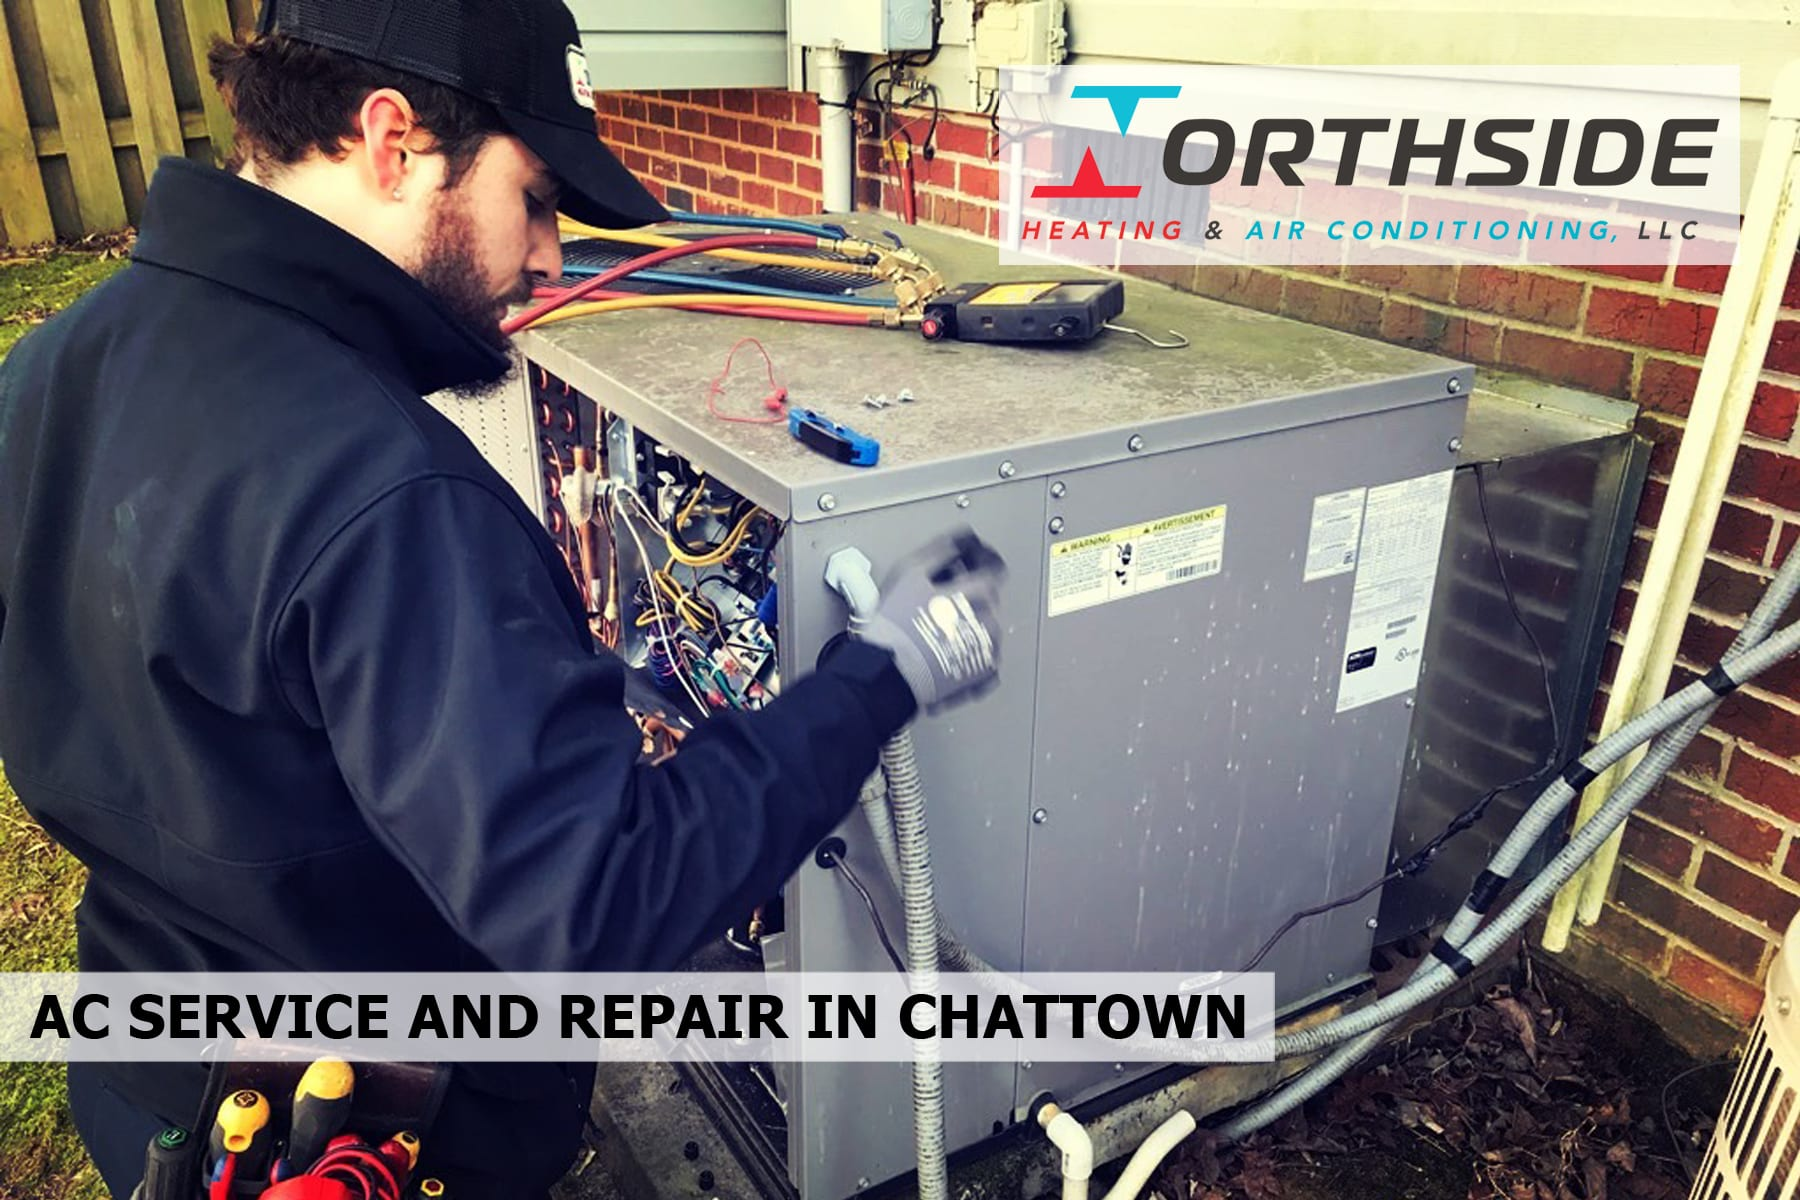 AC SERVICE AND REPAIR IN CHATTOWN